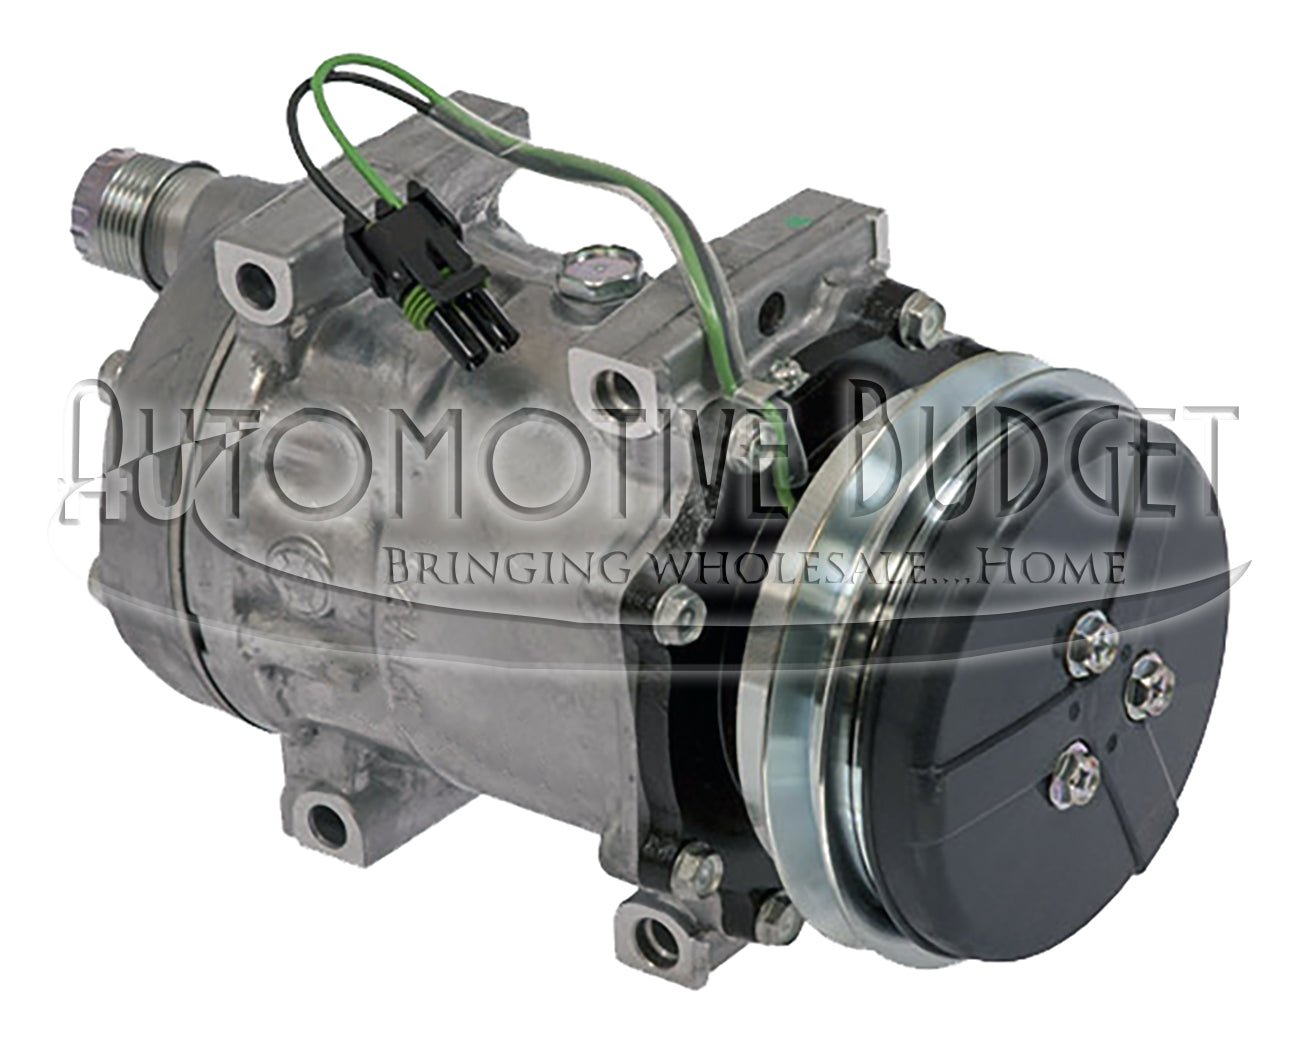 A/C Compressor for Komatsu equipment